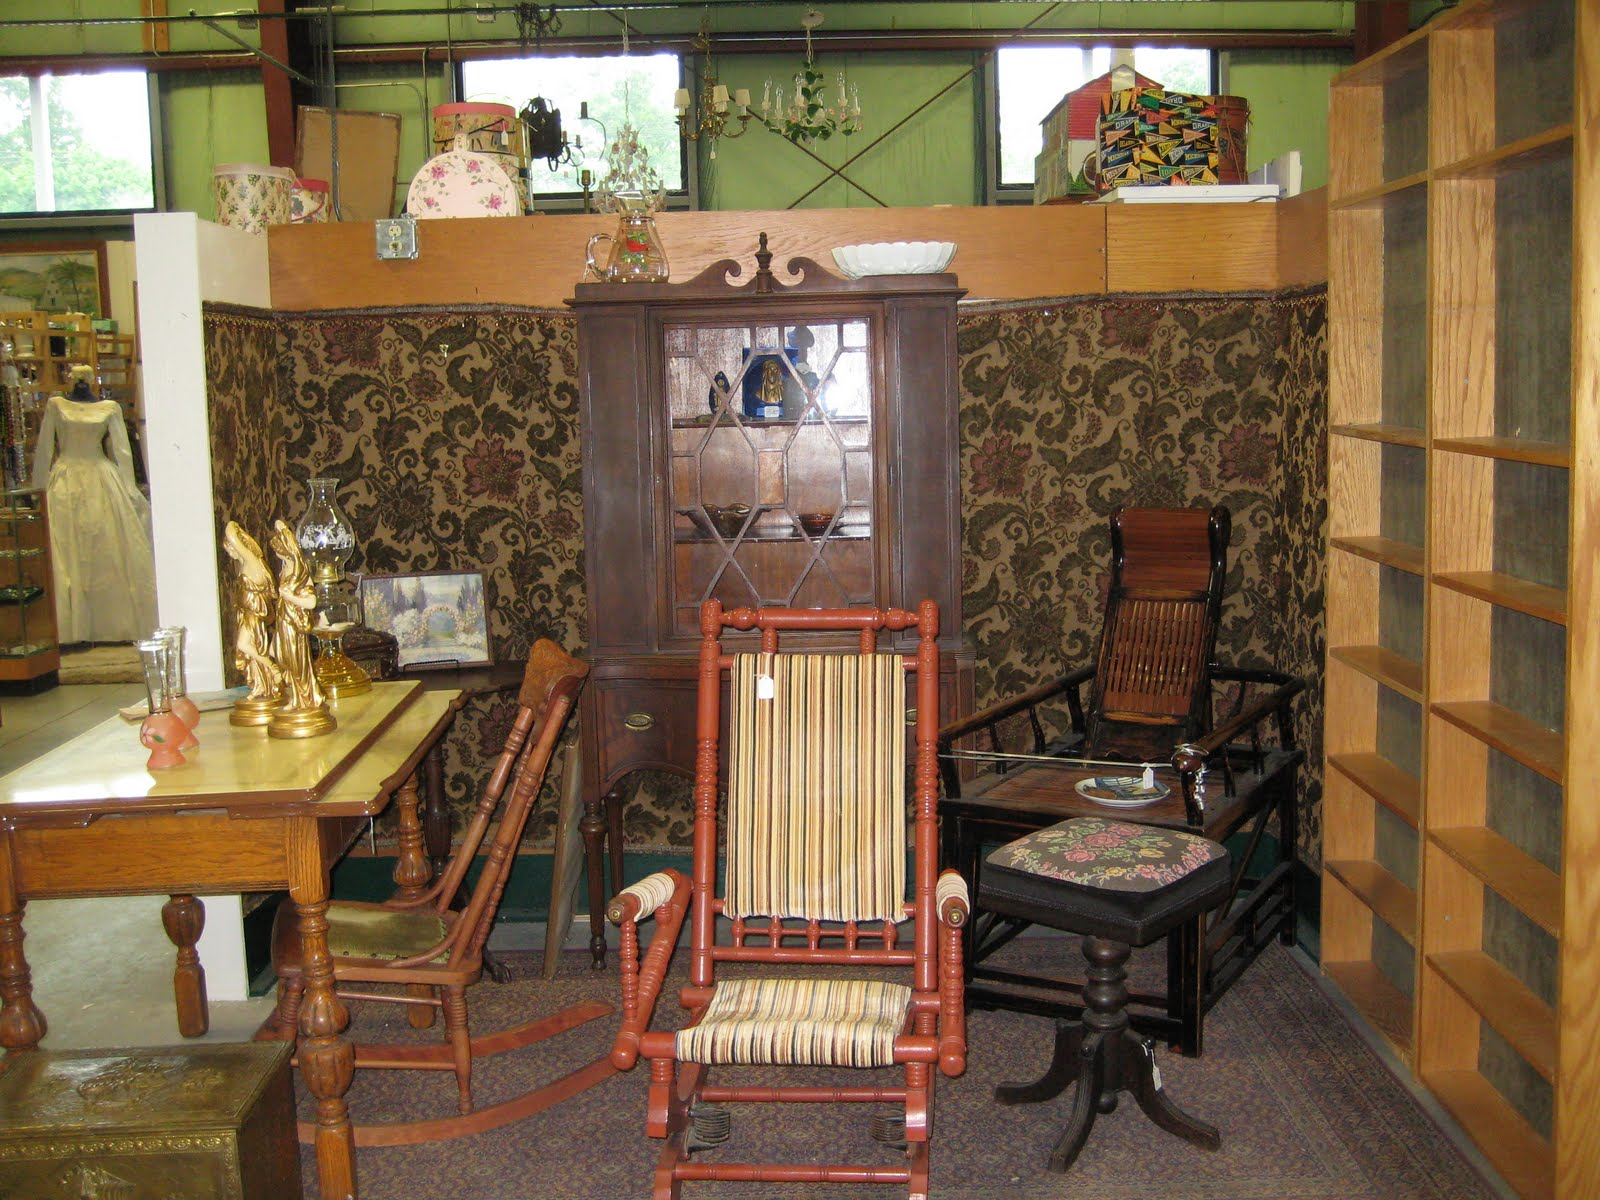 Antique Booth Display Ideas: The Importance Of Planning